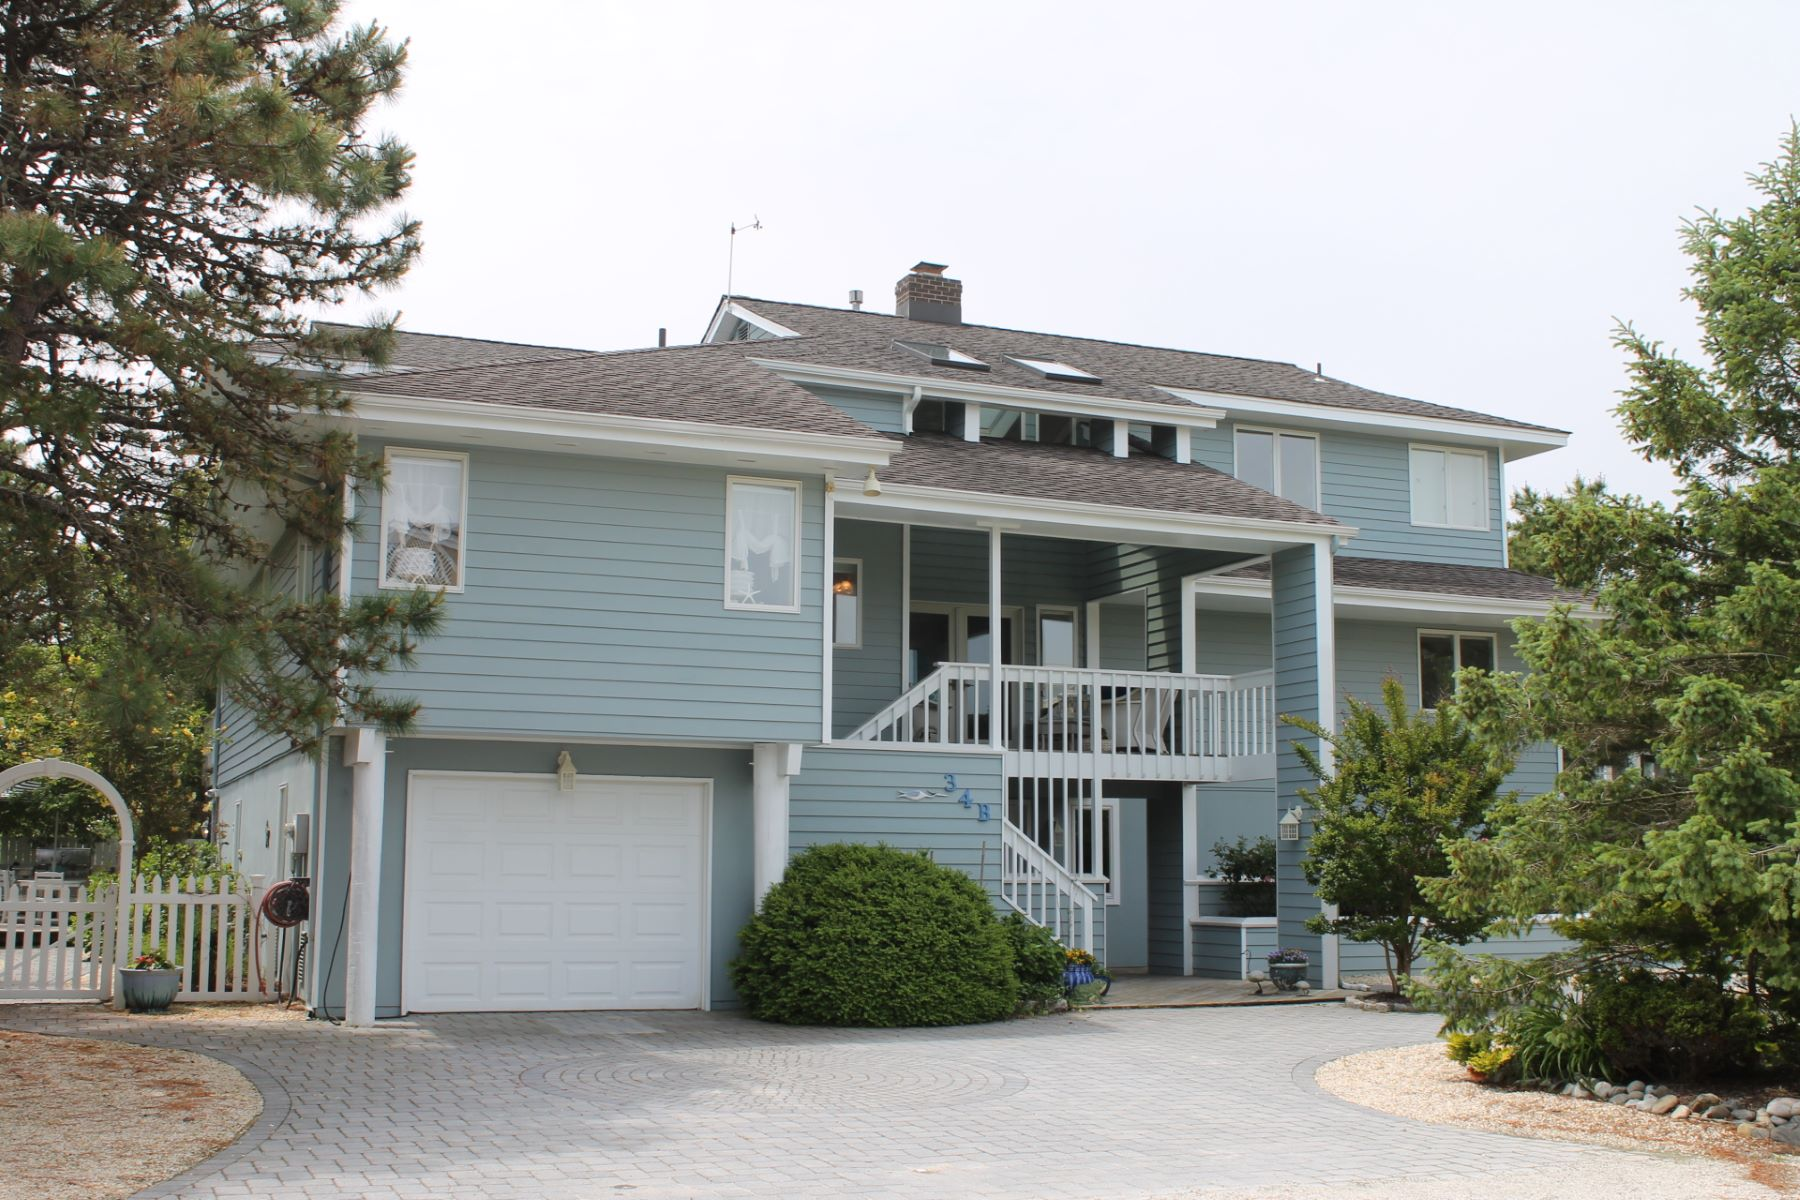 Single Family Home for Sale at SANCTUARY 34B Long Beach Blvd. Long Beach Township, New Jersey 08008 United States